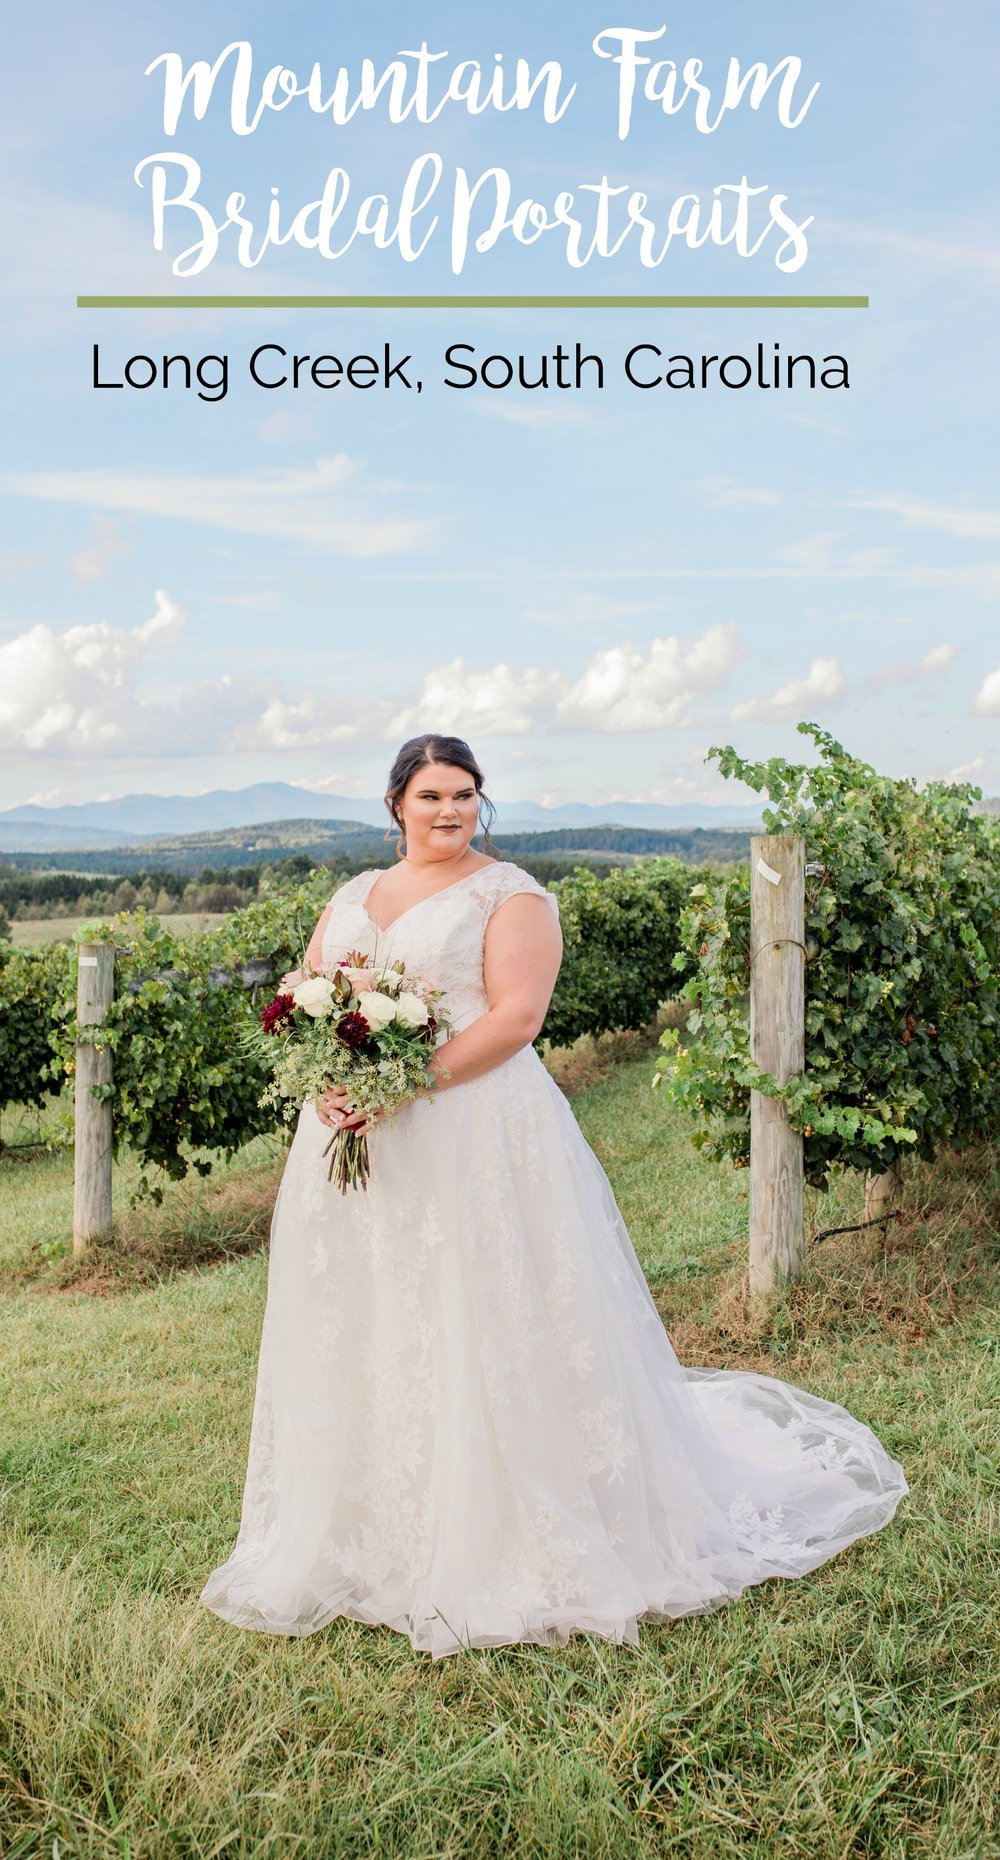 Brandi's Bridal Portraits at Chattooga Belle Farm, Long Creek, South Carolina | Palmetto State Weddings | CH Photography | Greenville SC wedding | bridal portrait inspiration | mountain wedding